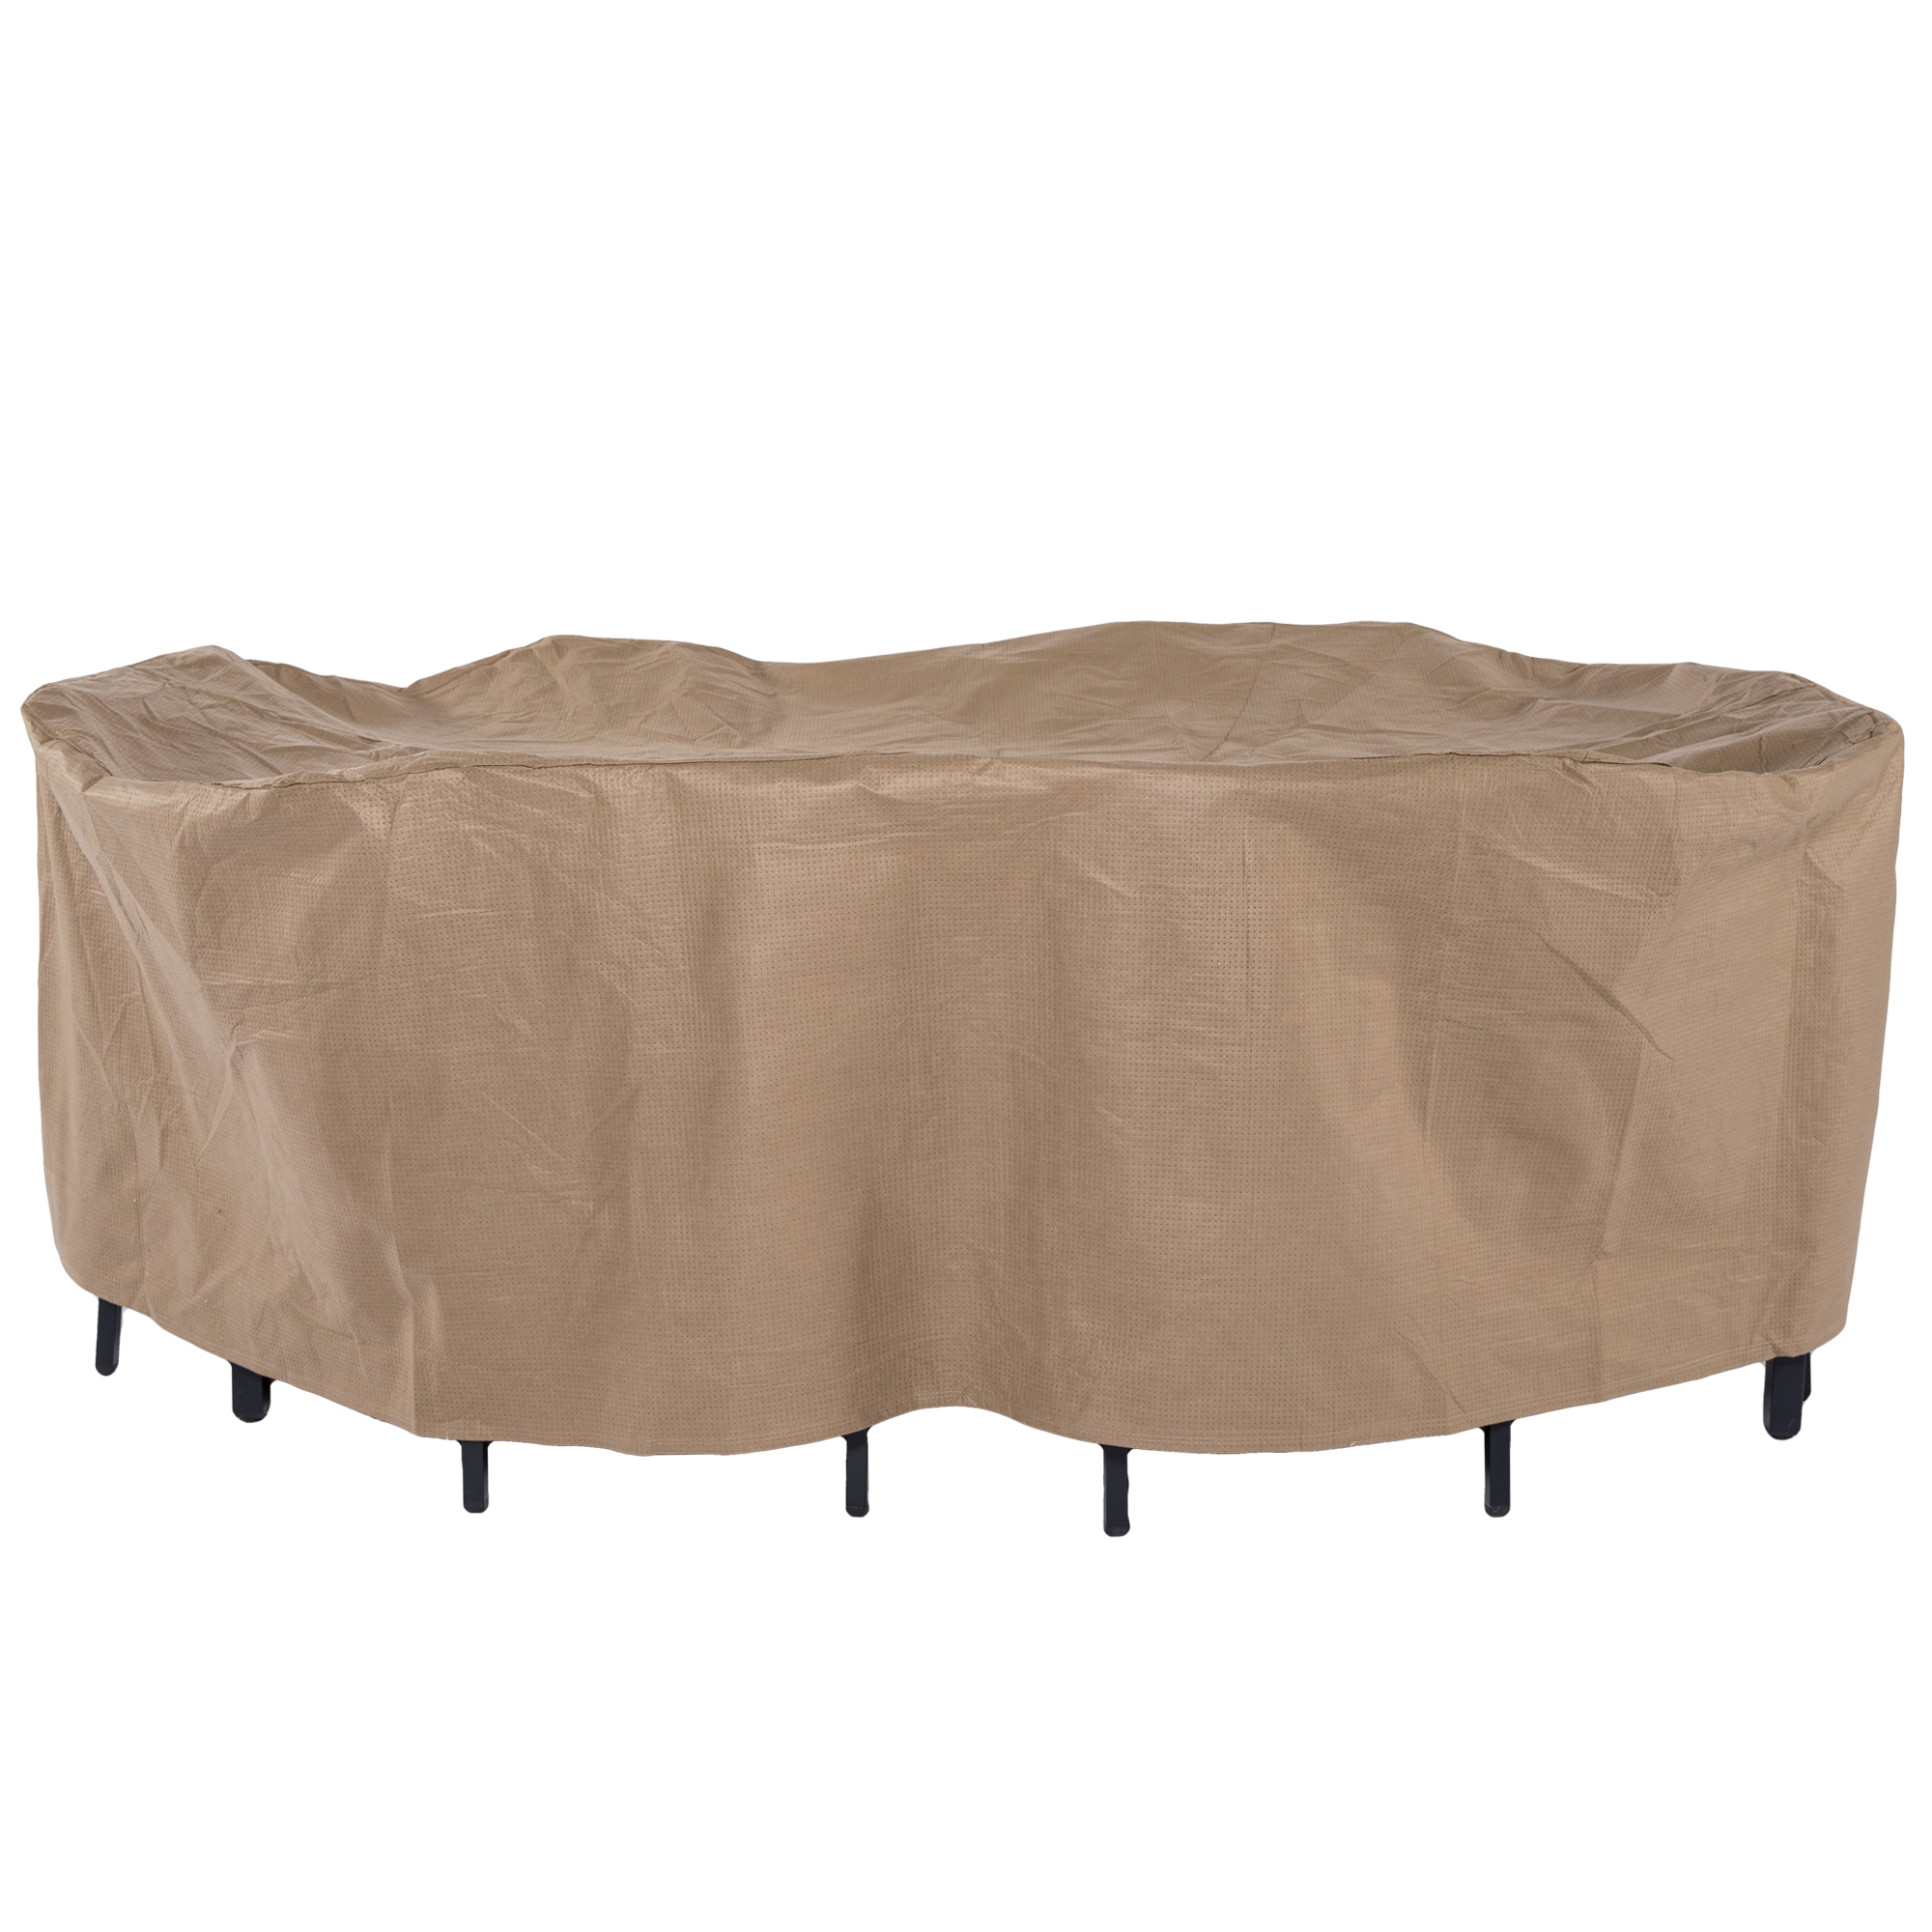 Duck Covers Essential Patio Loveseat Cover 54 Inch Flexible Storage